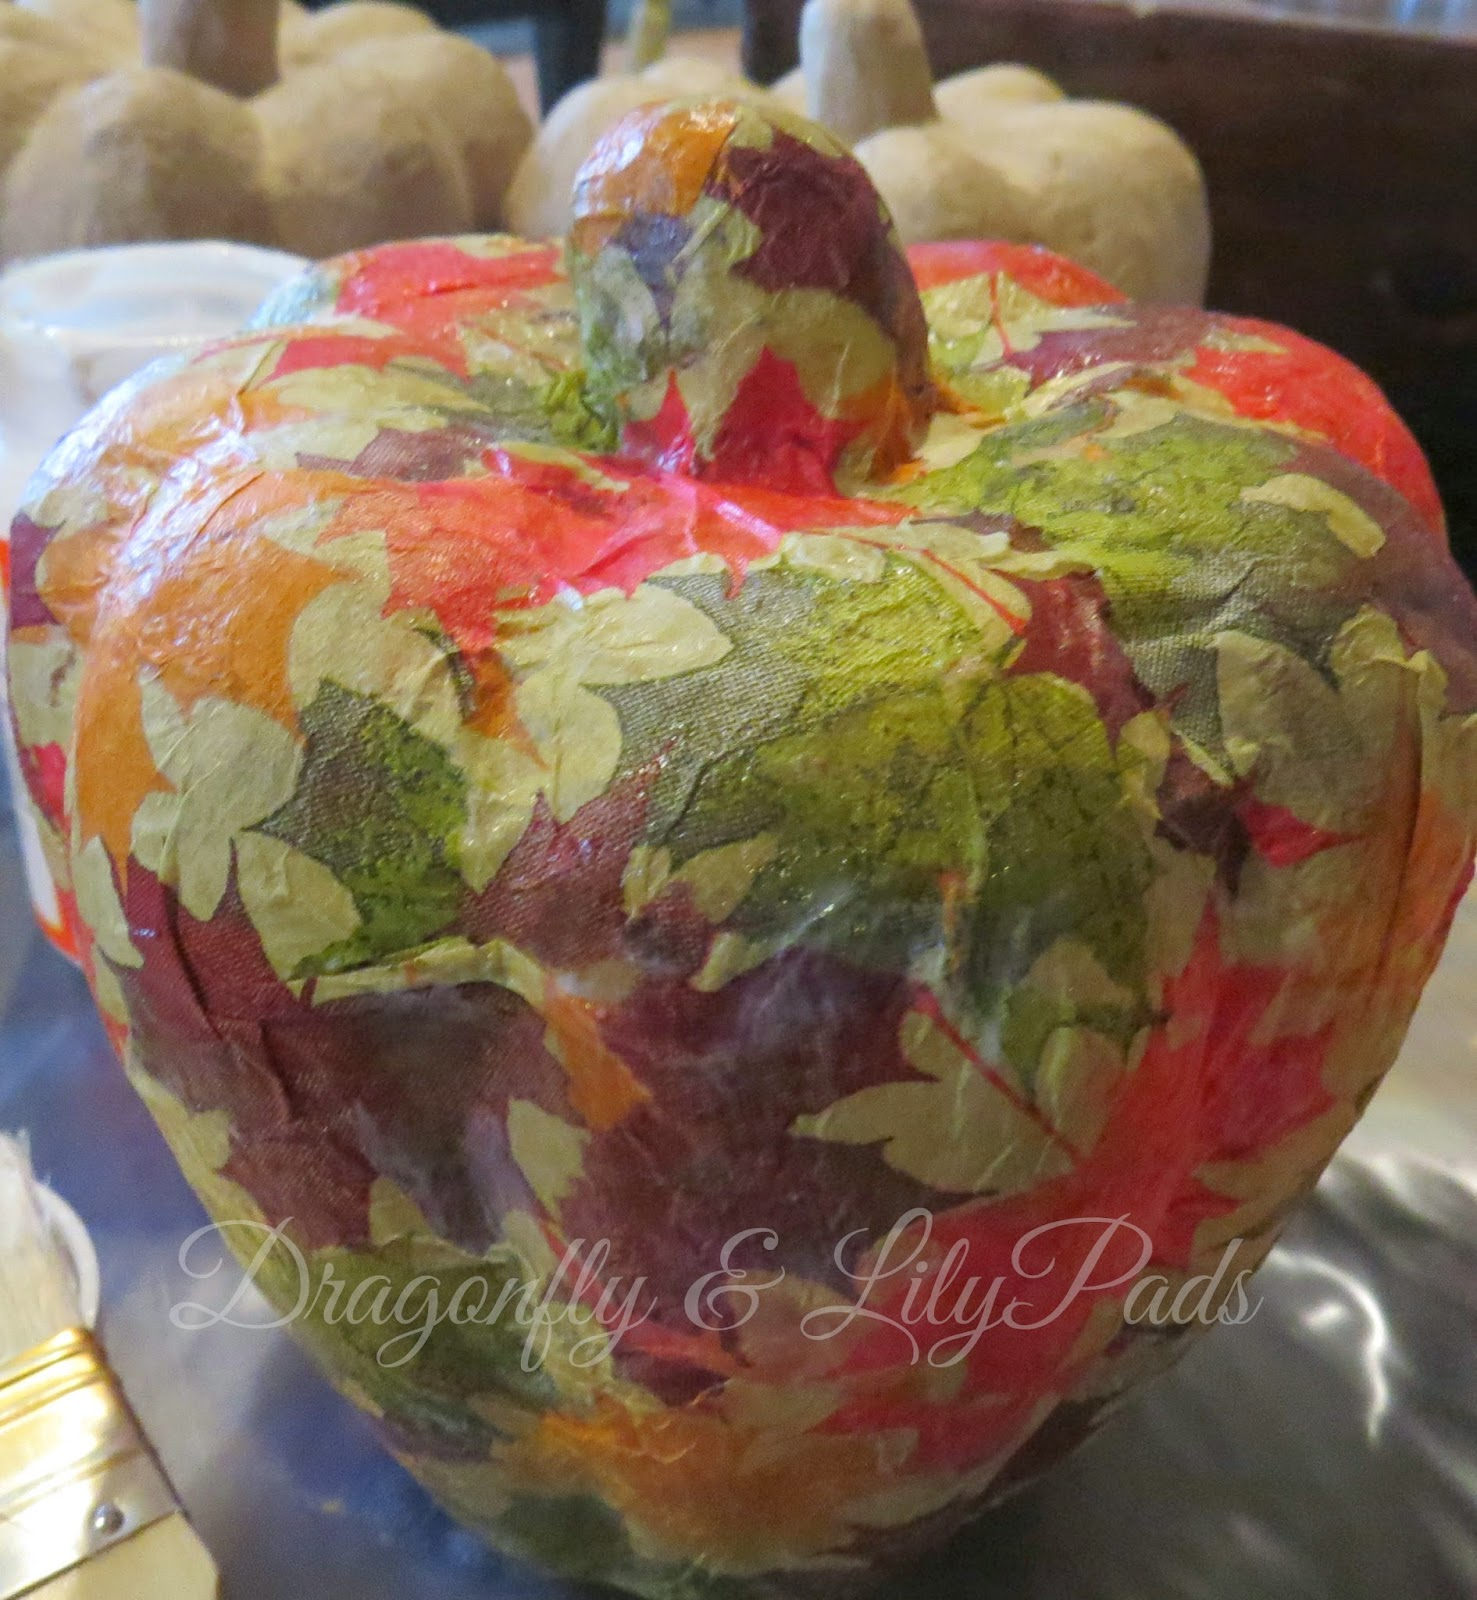 Fall Leaves Pumpkin, Decor, Decoration, Leaves, Mod Podge, Pumpkin